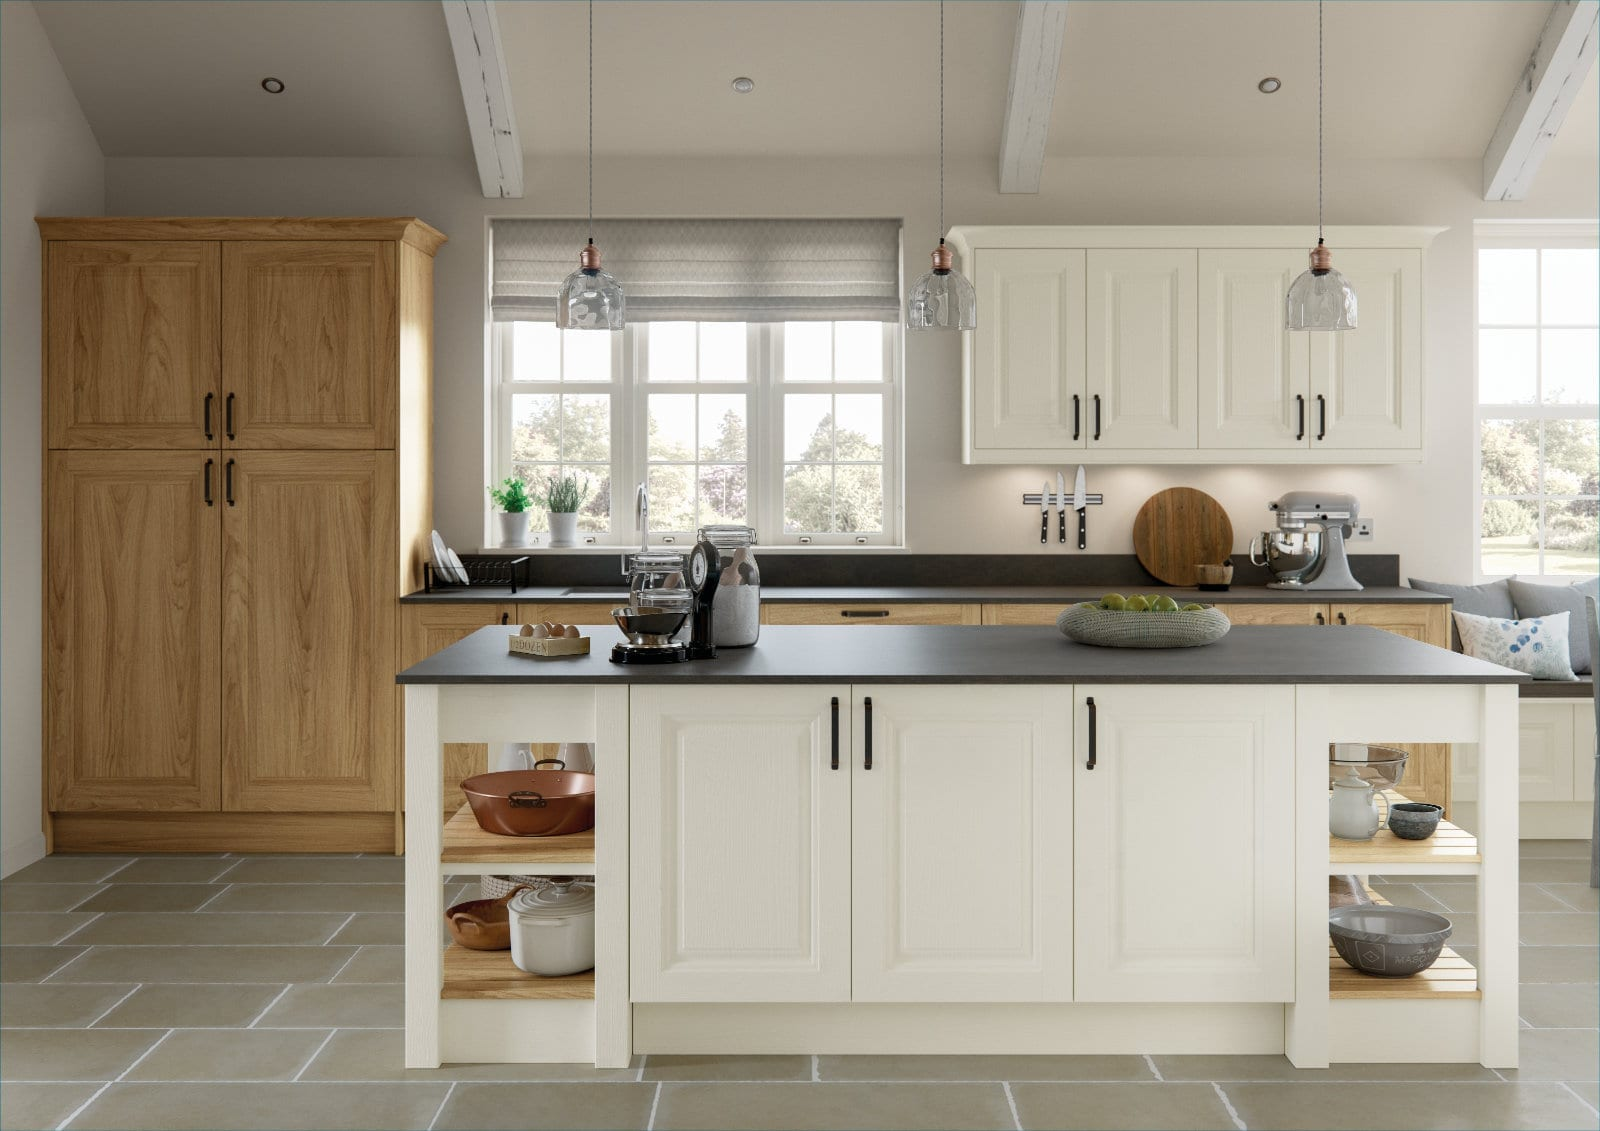 Alku White Wood Open Plan Shaker Kitchen With Island 1 | Unique Bedrooms Direct | Dunstable